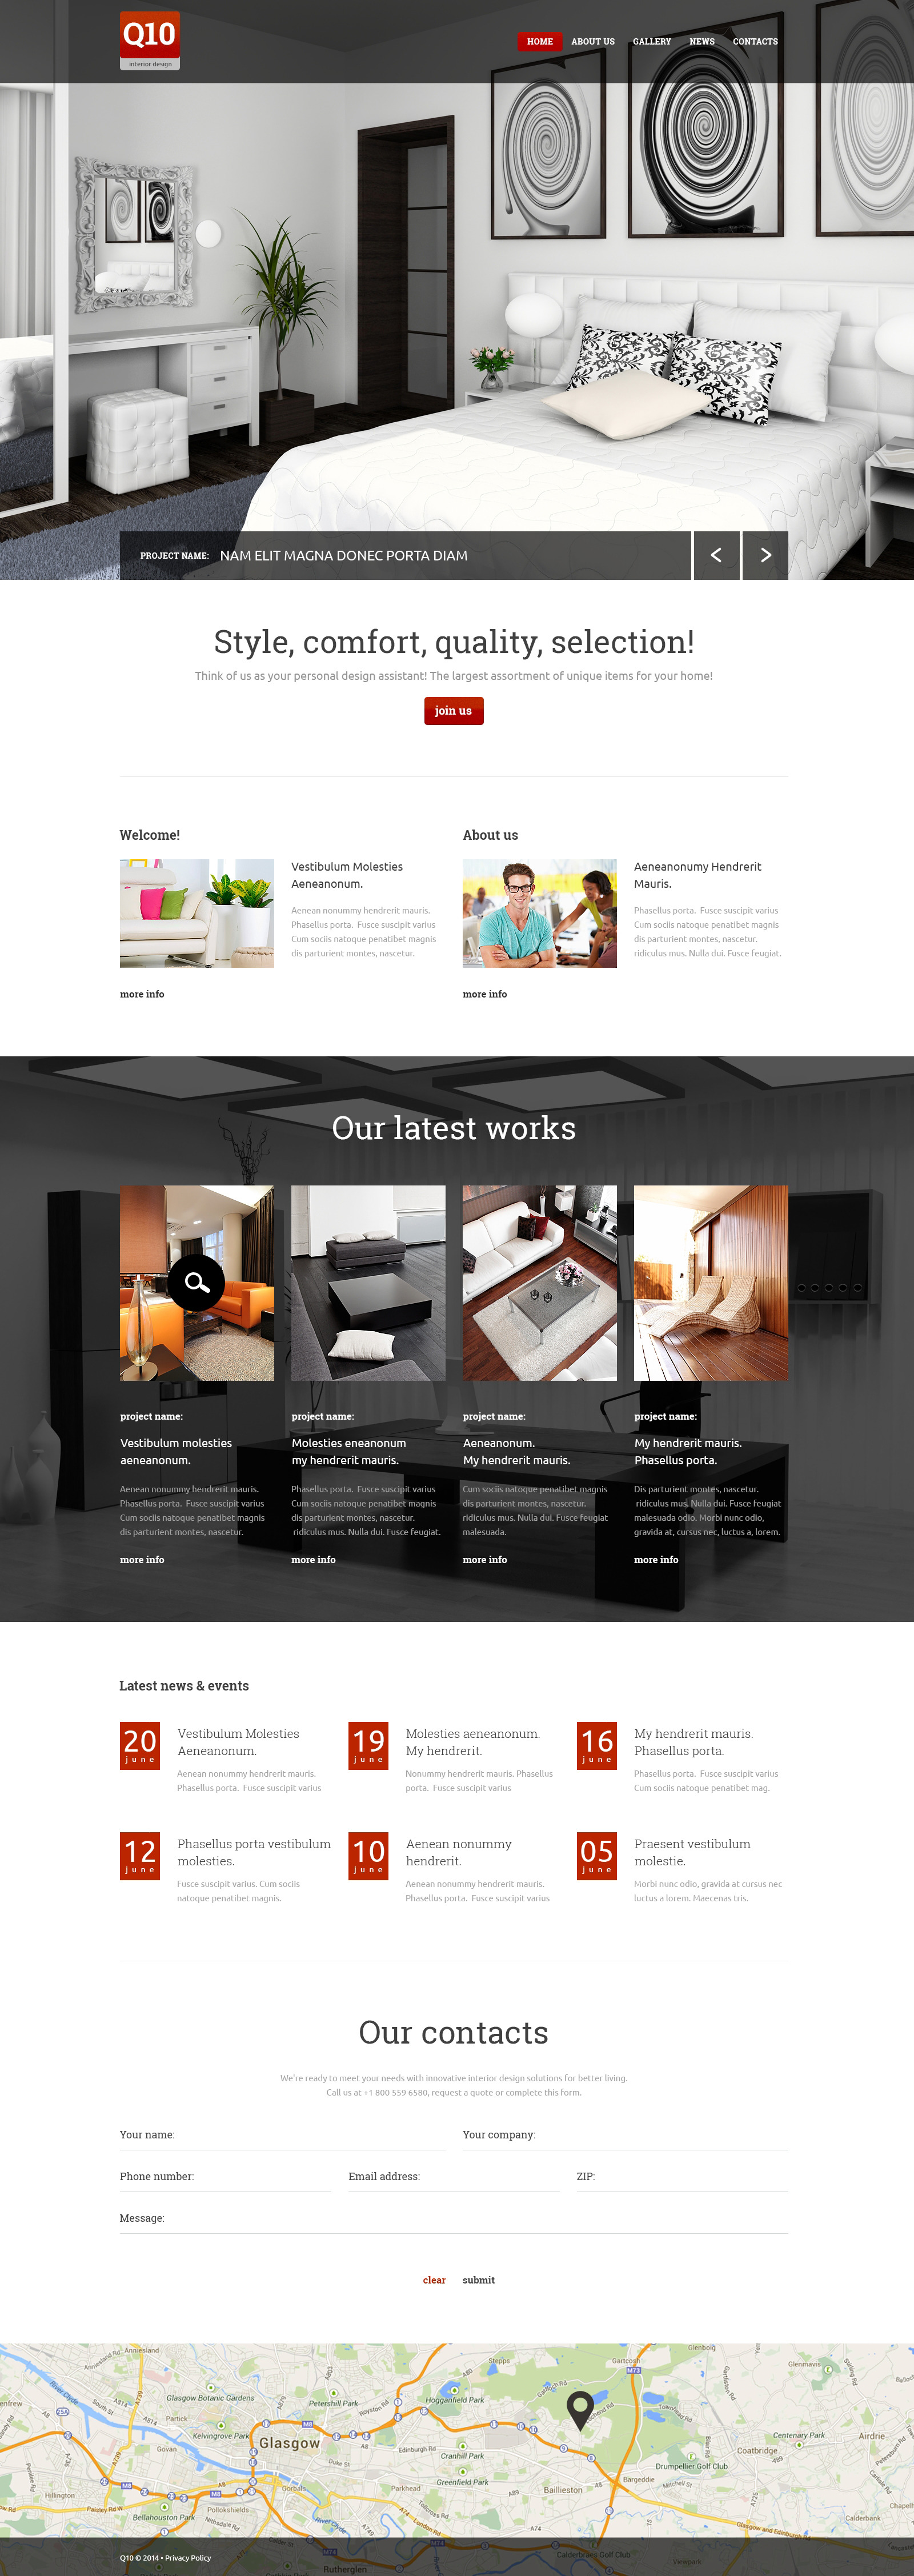 Fabulous Interactive Interior Design Websites Free Bauhs Creative With